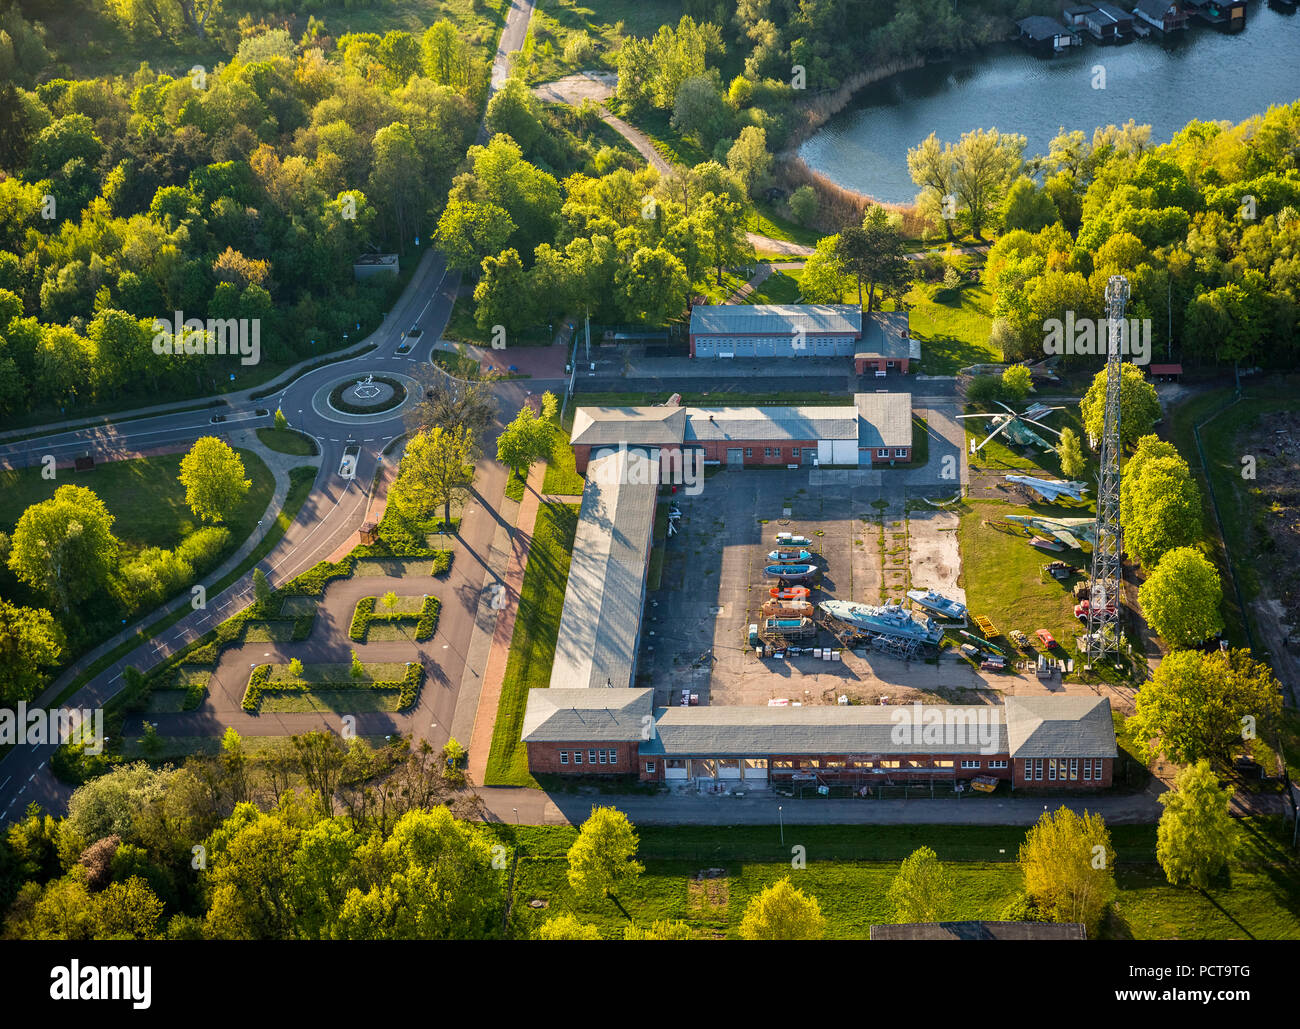 Rechlin Aviation Museum, Rechlin, Mecklenburg Lake Plateau, Mecklenburg-Western Pomerania, Germany - Stock Image